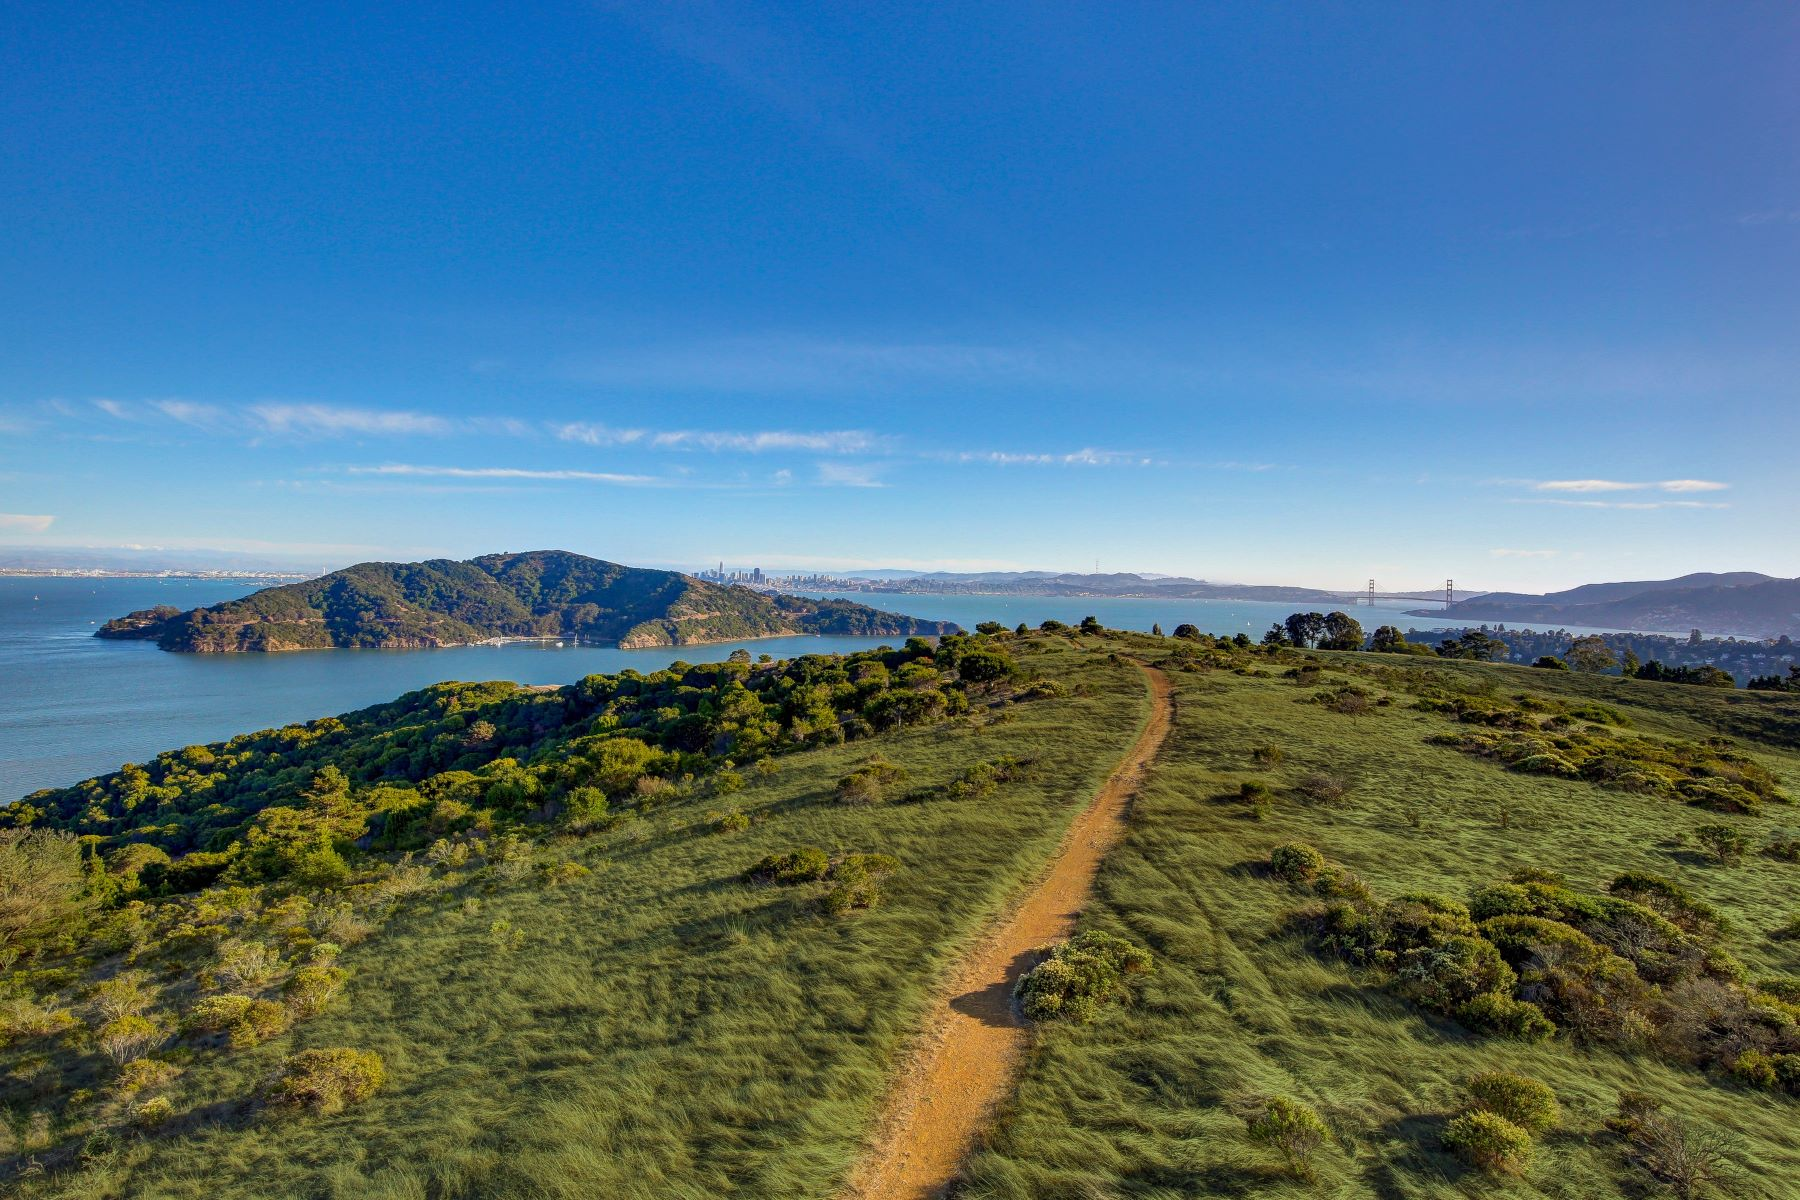 Terreno para Venda às Easton Point Tiburon, Califórnia 94920 Estados Unidos